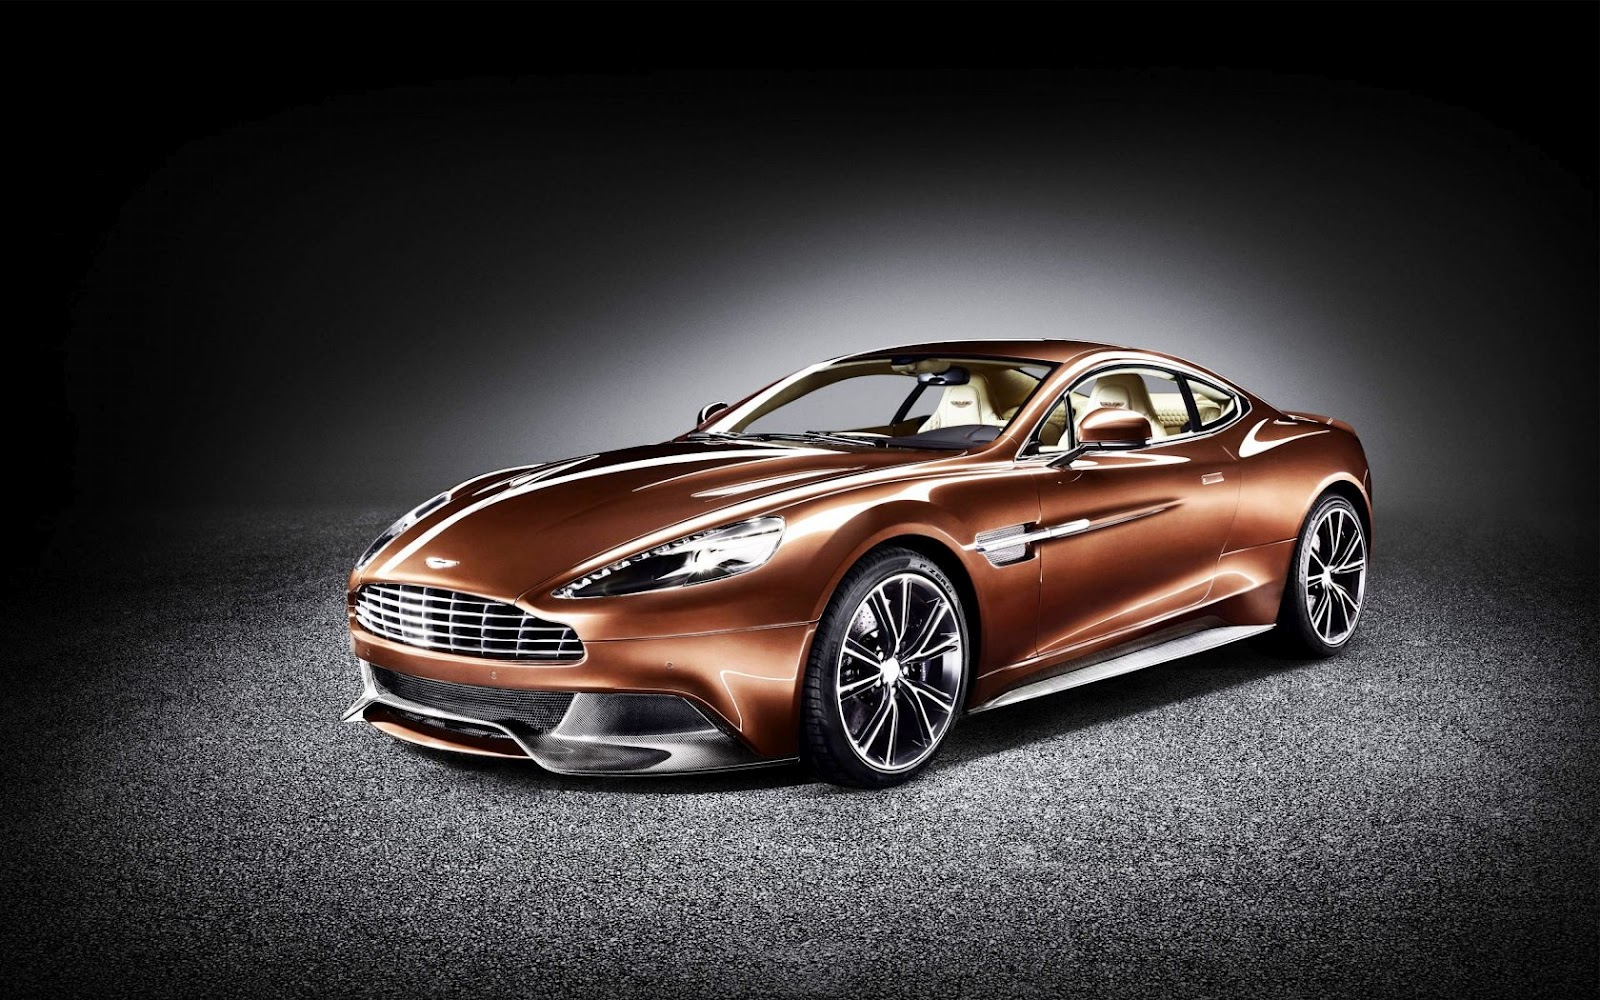 http://4.bp.blogspot.com/-pW15ufFpguE/T-gz9FBIMCI/AAAAAAAADHY/NcFFrq0tm50/s1600/aston-martin-am-310-vanquish-1680x1050_wallpaper.jpg